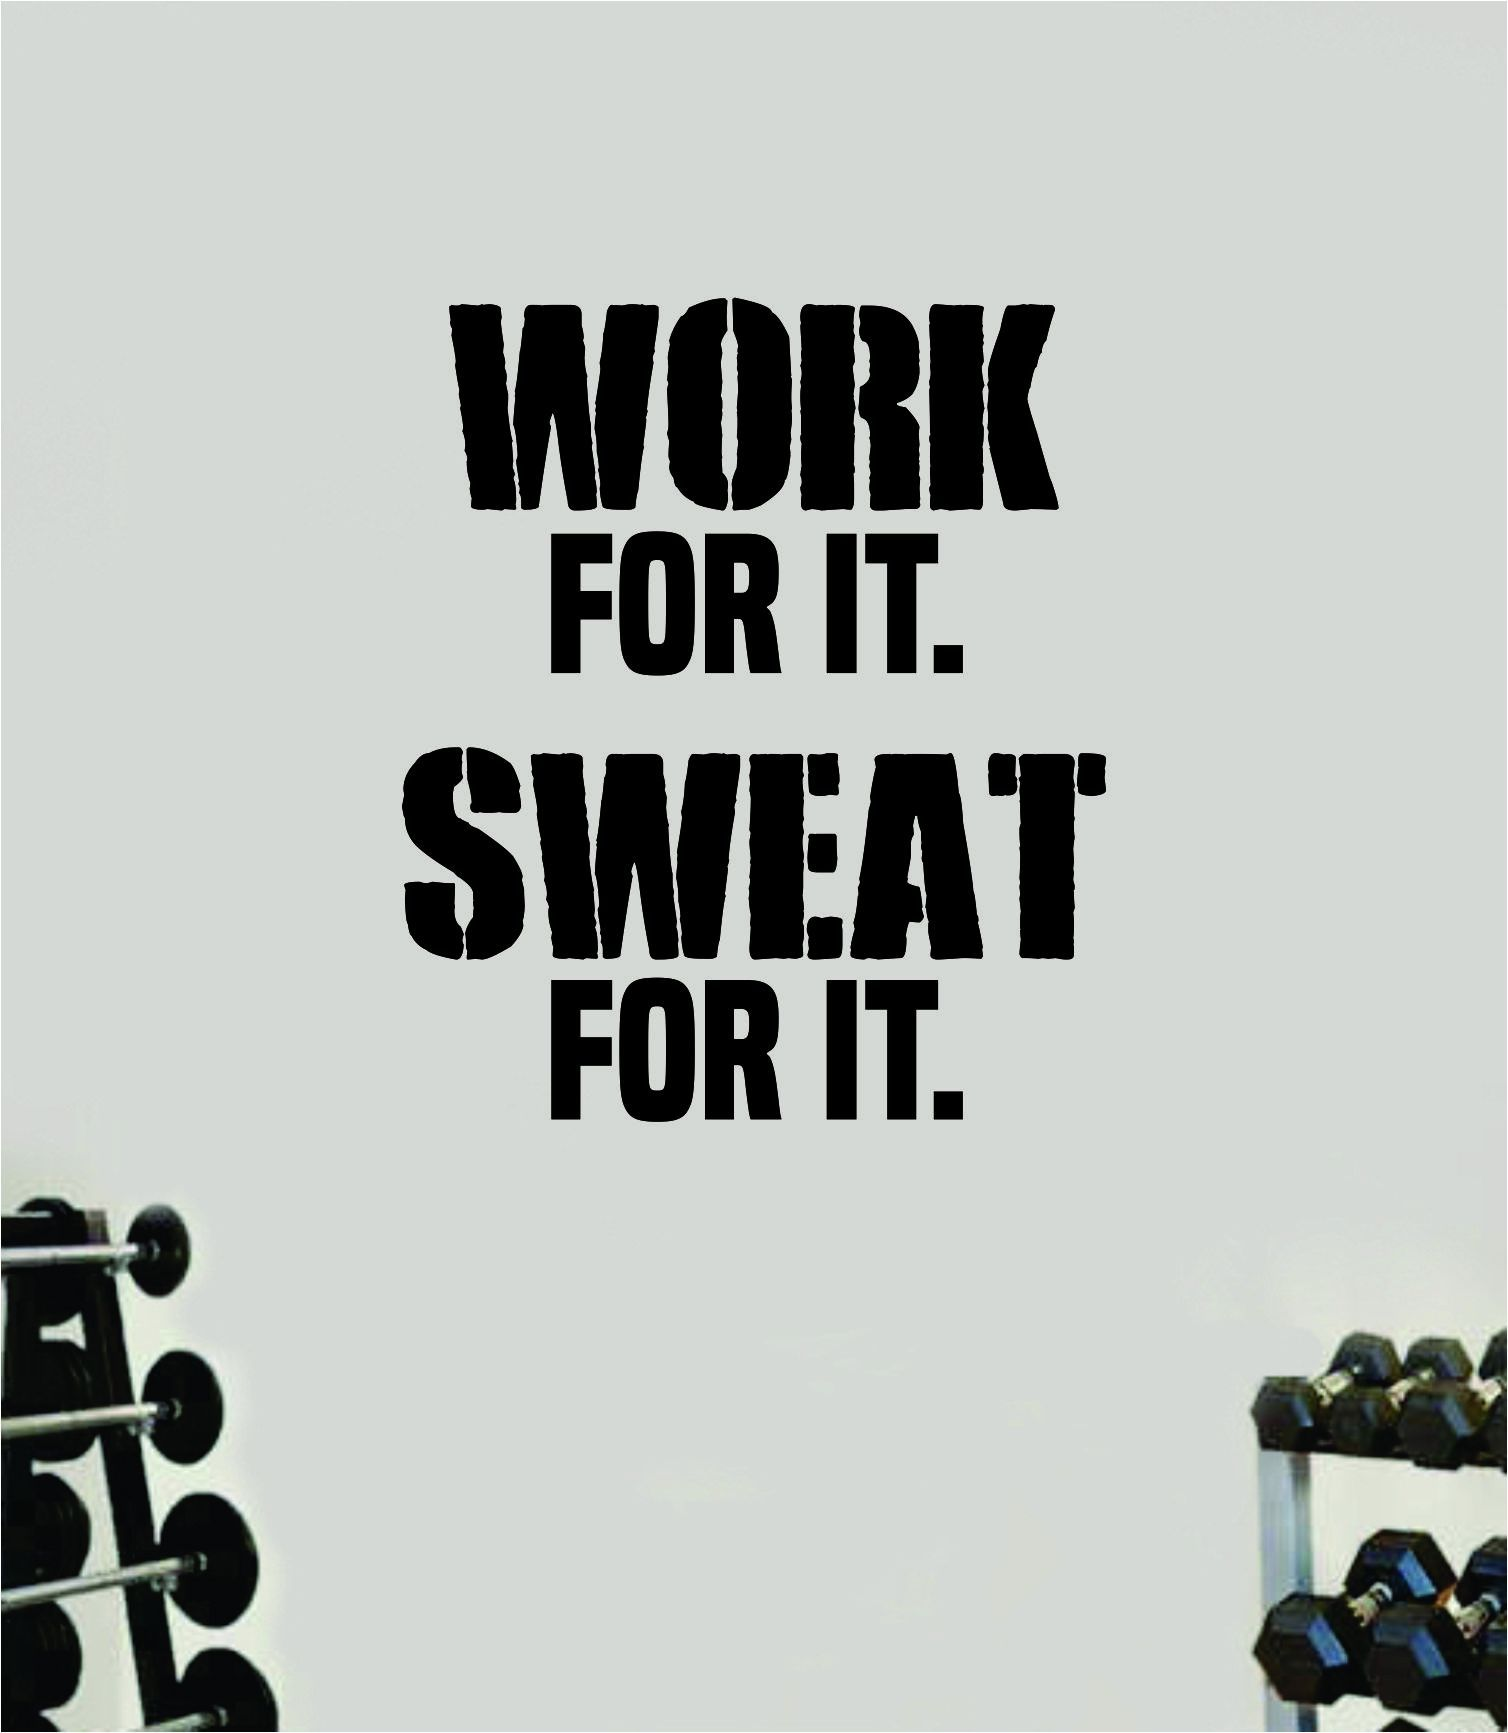 Work For It Sweat For It Gym Quote Fitness Health Work Out Decal Sticker Vinyl Art Wall Room Decor Teen Motivation Inspirational Girls Lift - yellow